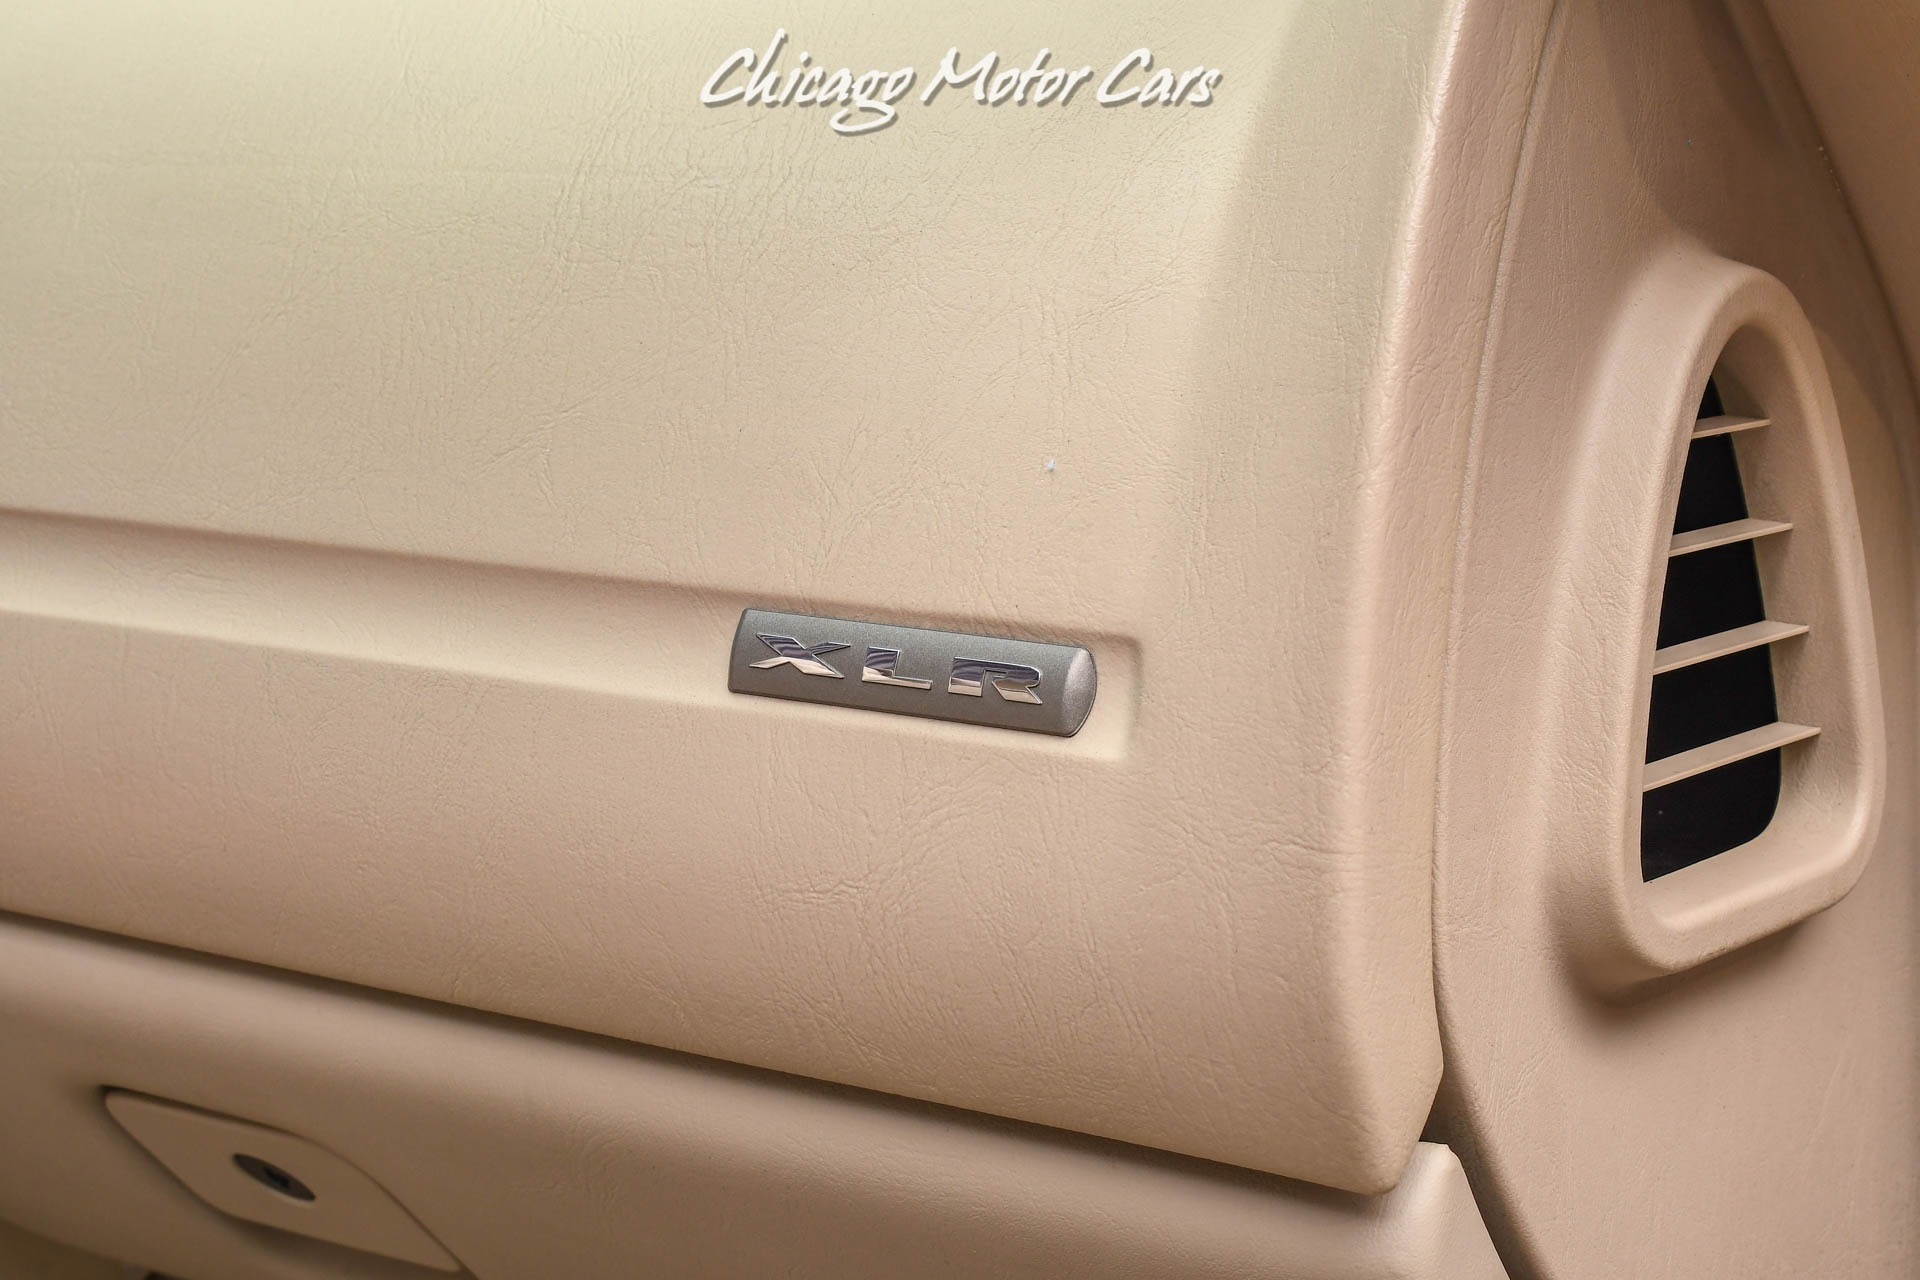 Used-2004-Cadillac-XLR-Extremely-Clean-Example-Navigation-BOSE-Sound-Full-Leather